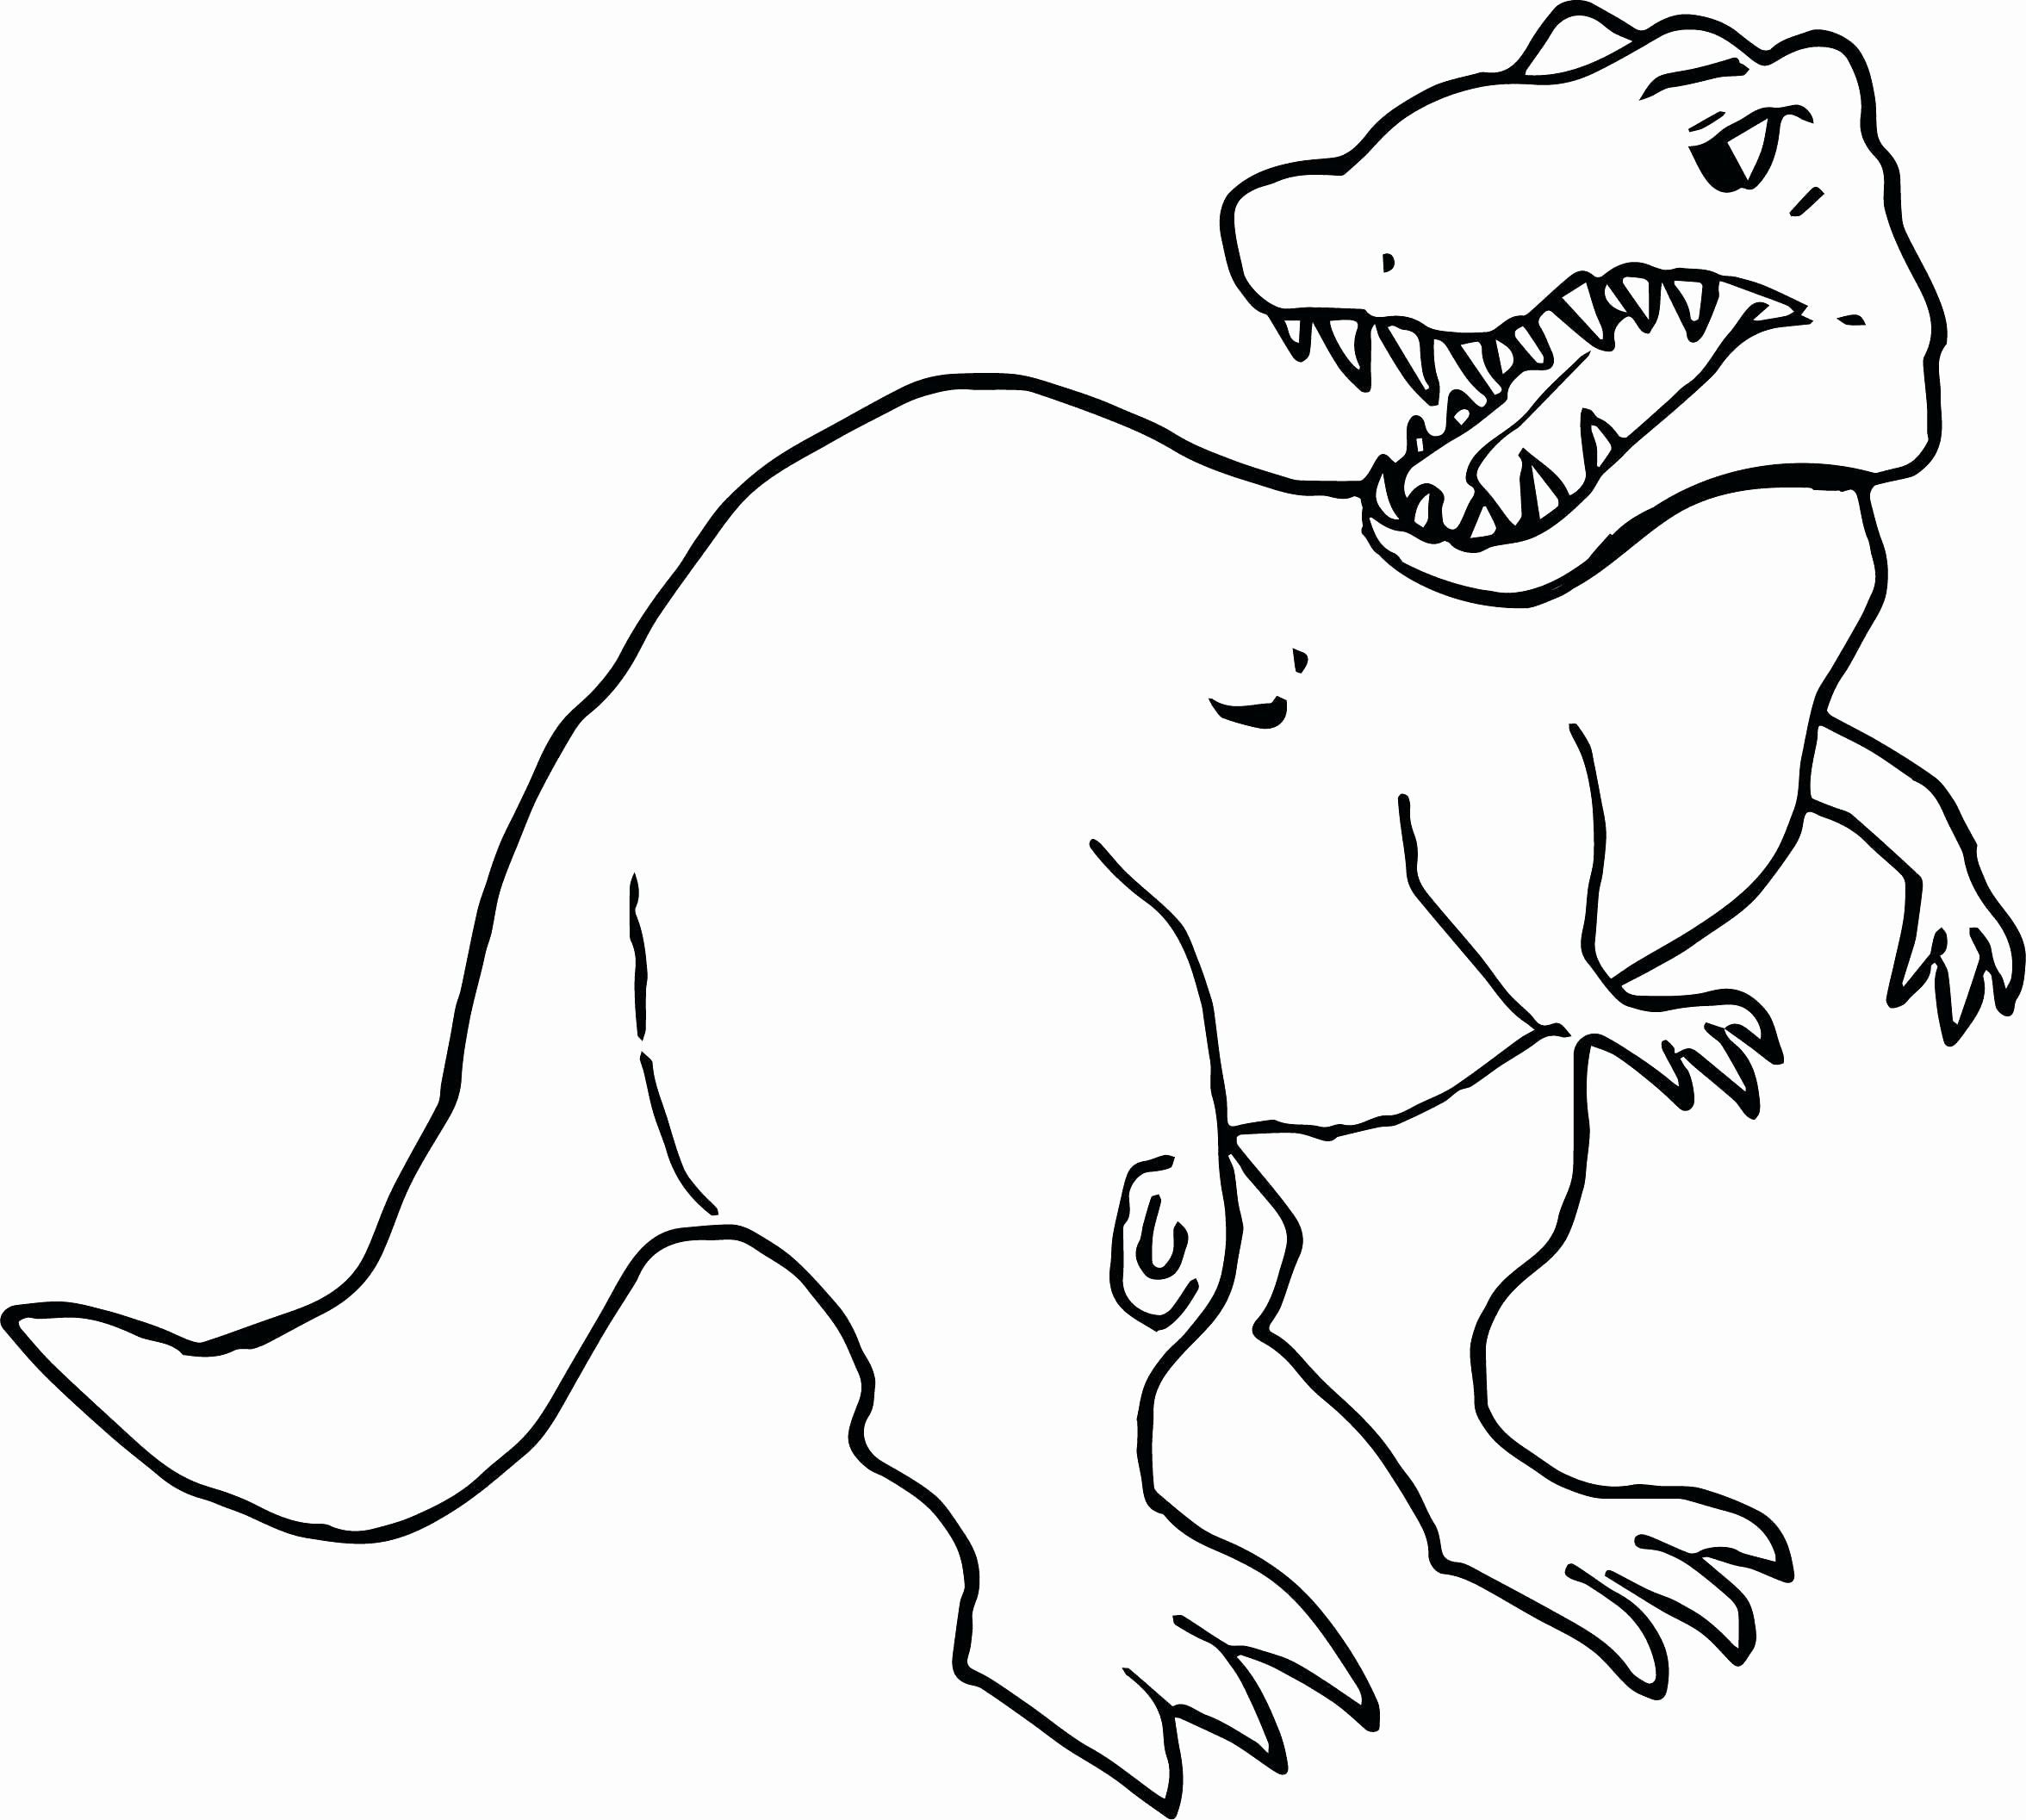 T Rex Coloring Pages Printable in 2020 Dinosaur template